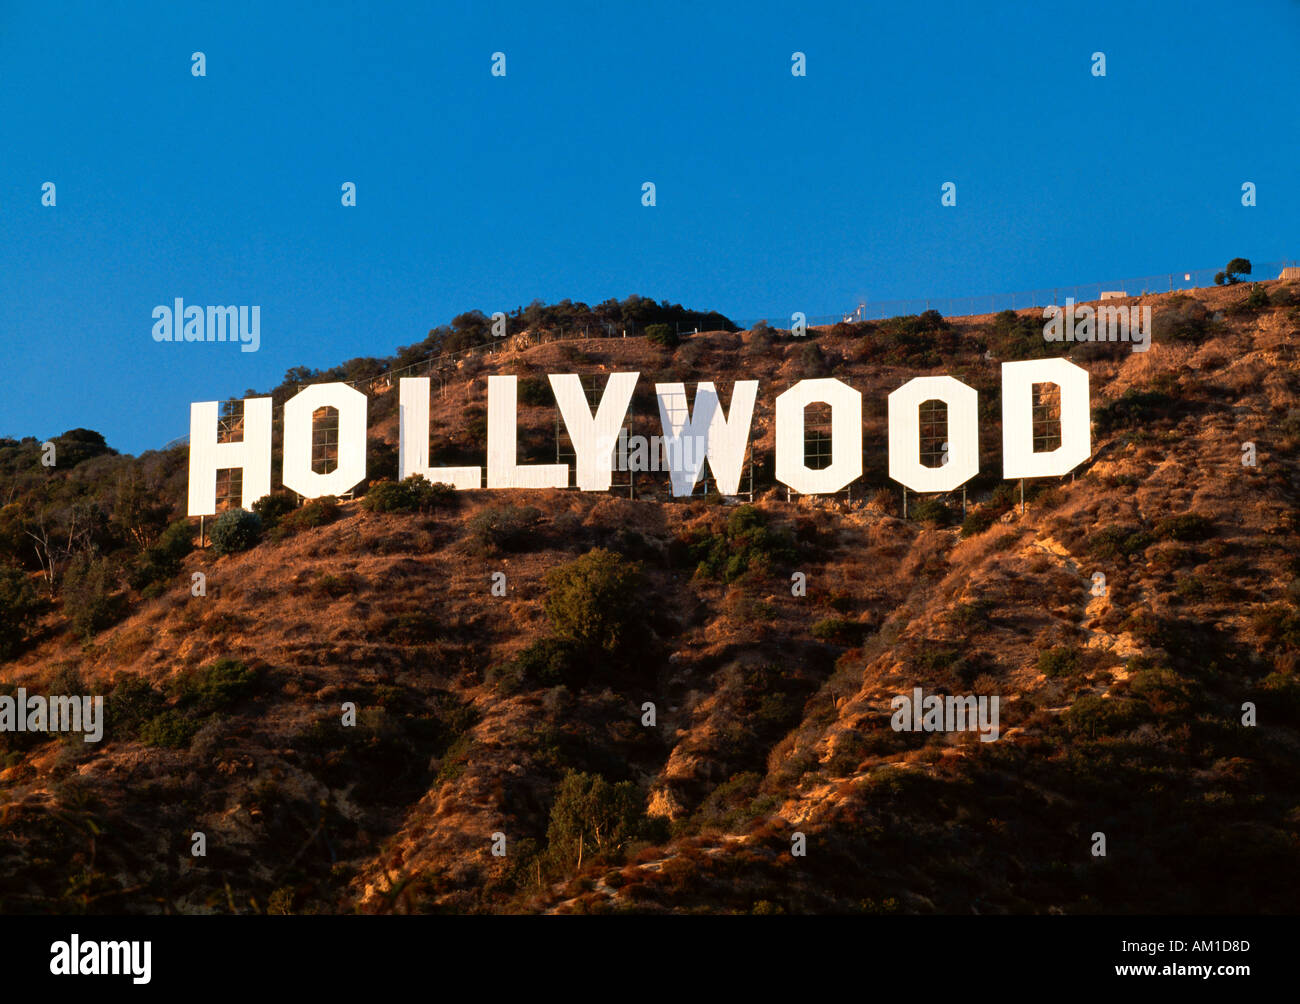 United States of America, California, Los Angeles, The Hollywood sign in Beverley Hills - Stock Image